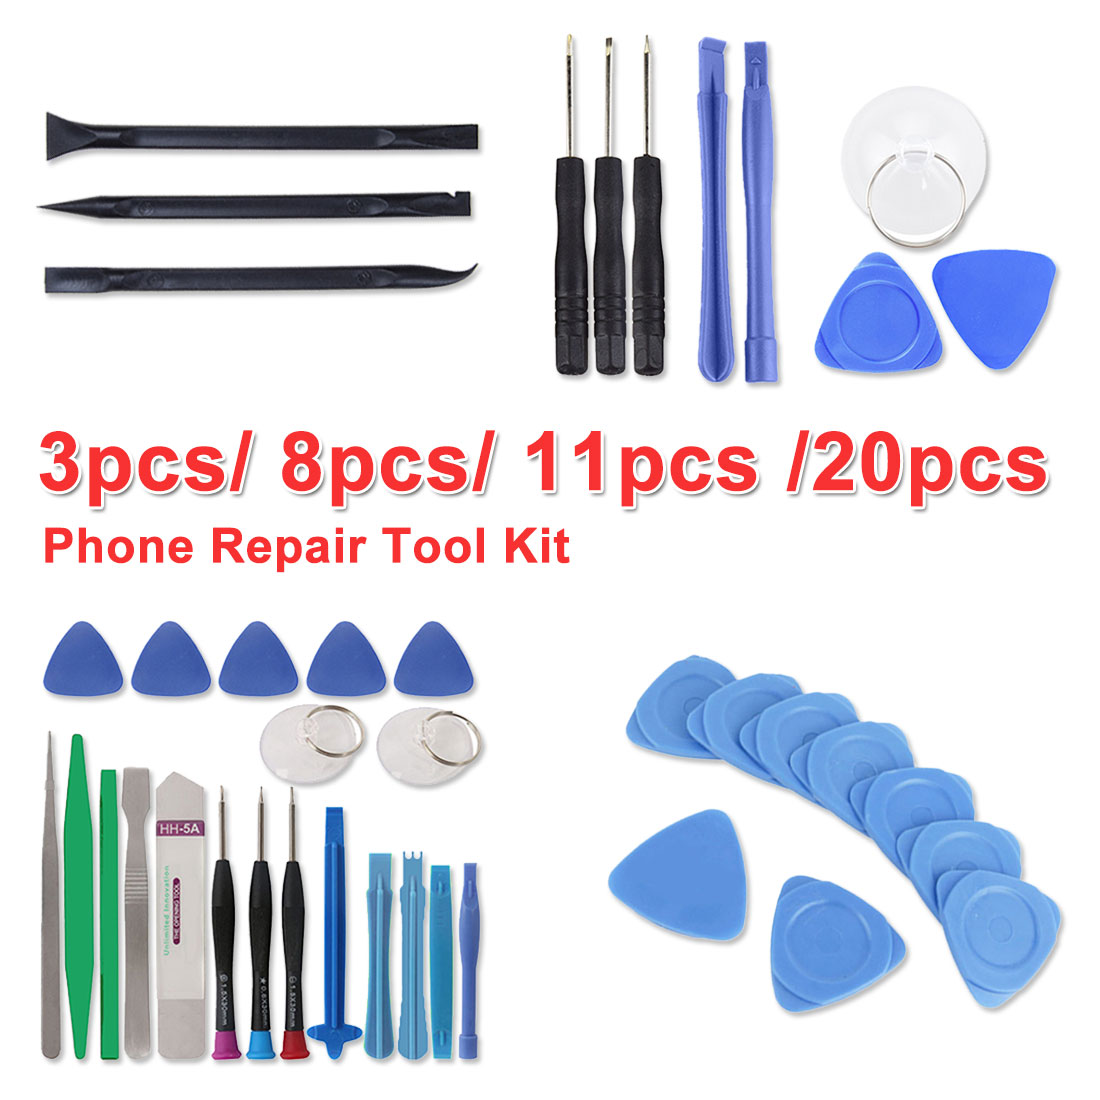 8 In 1/11 In 1/20 In 1/3pcs Mobile Phone Repair Tools Kit Spudger Pry Opening Tool Screwdriver Set For Phone Hand Tools Set